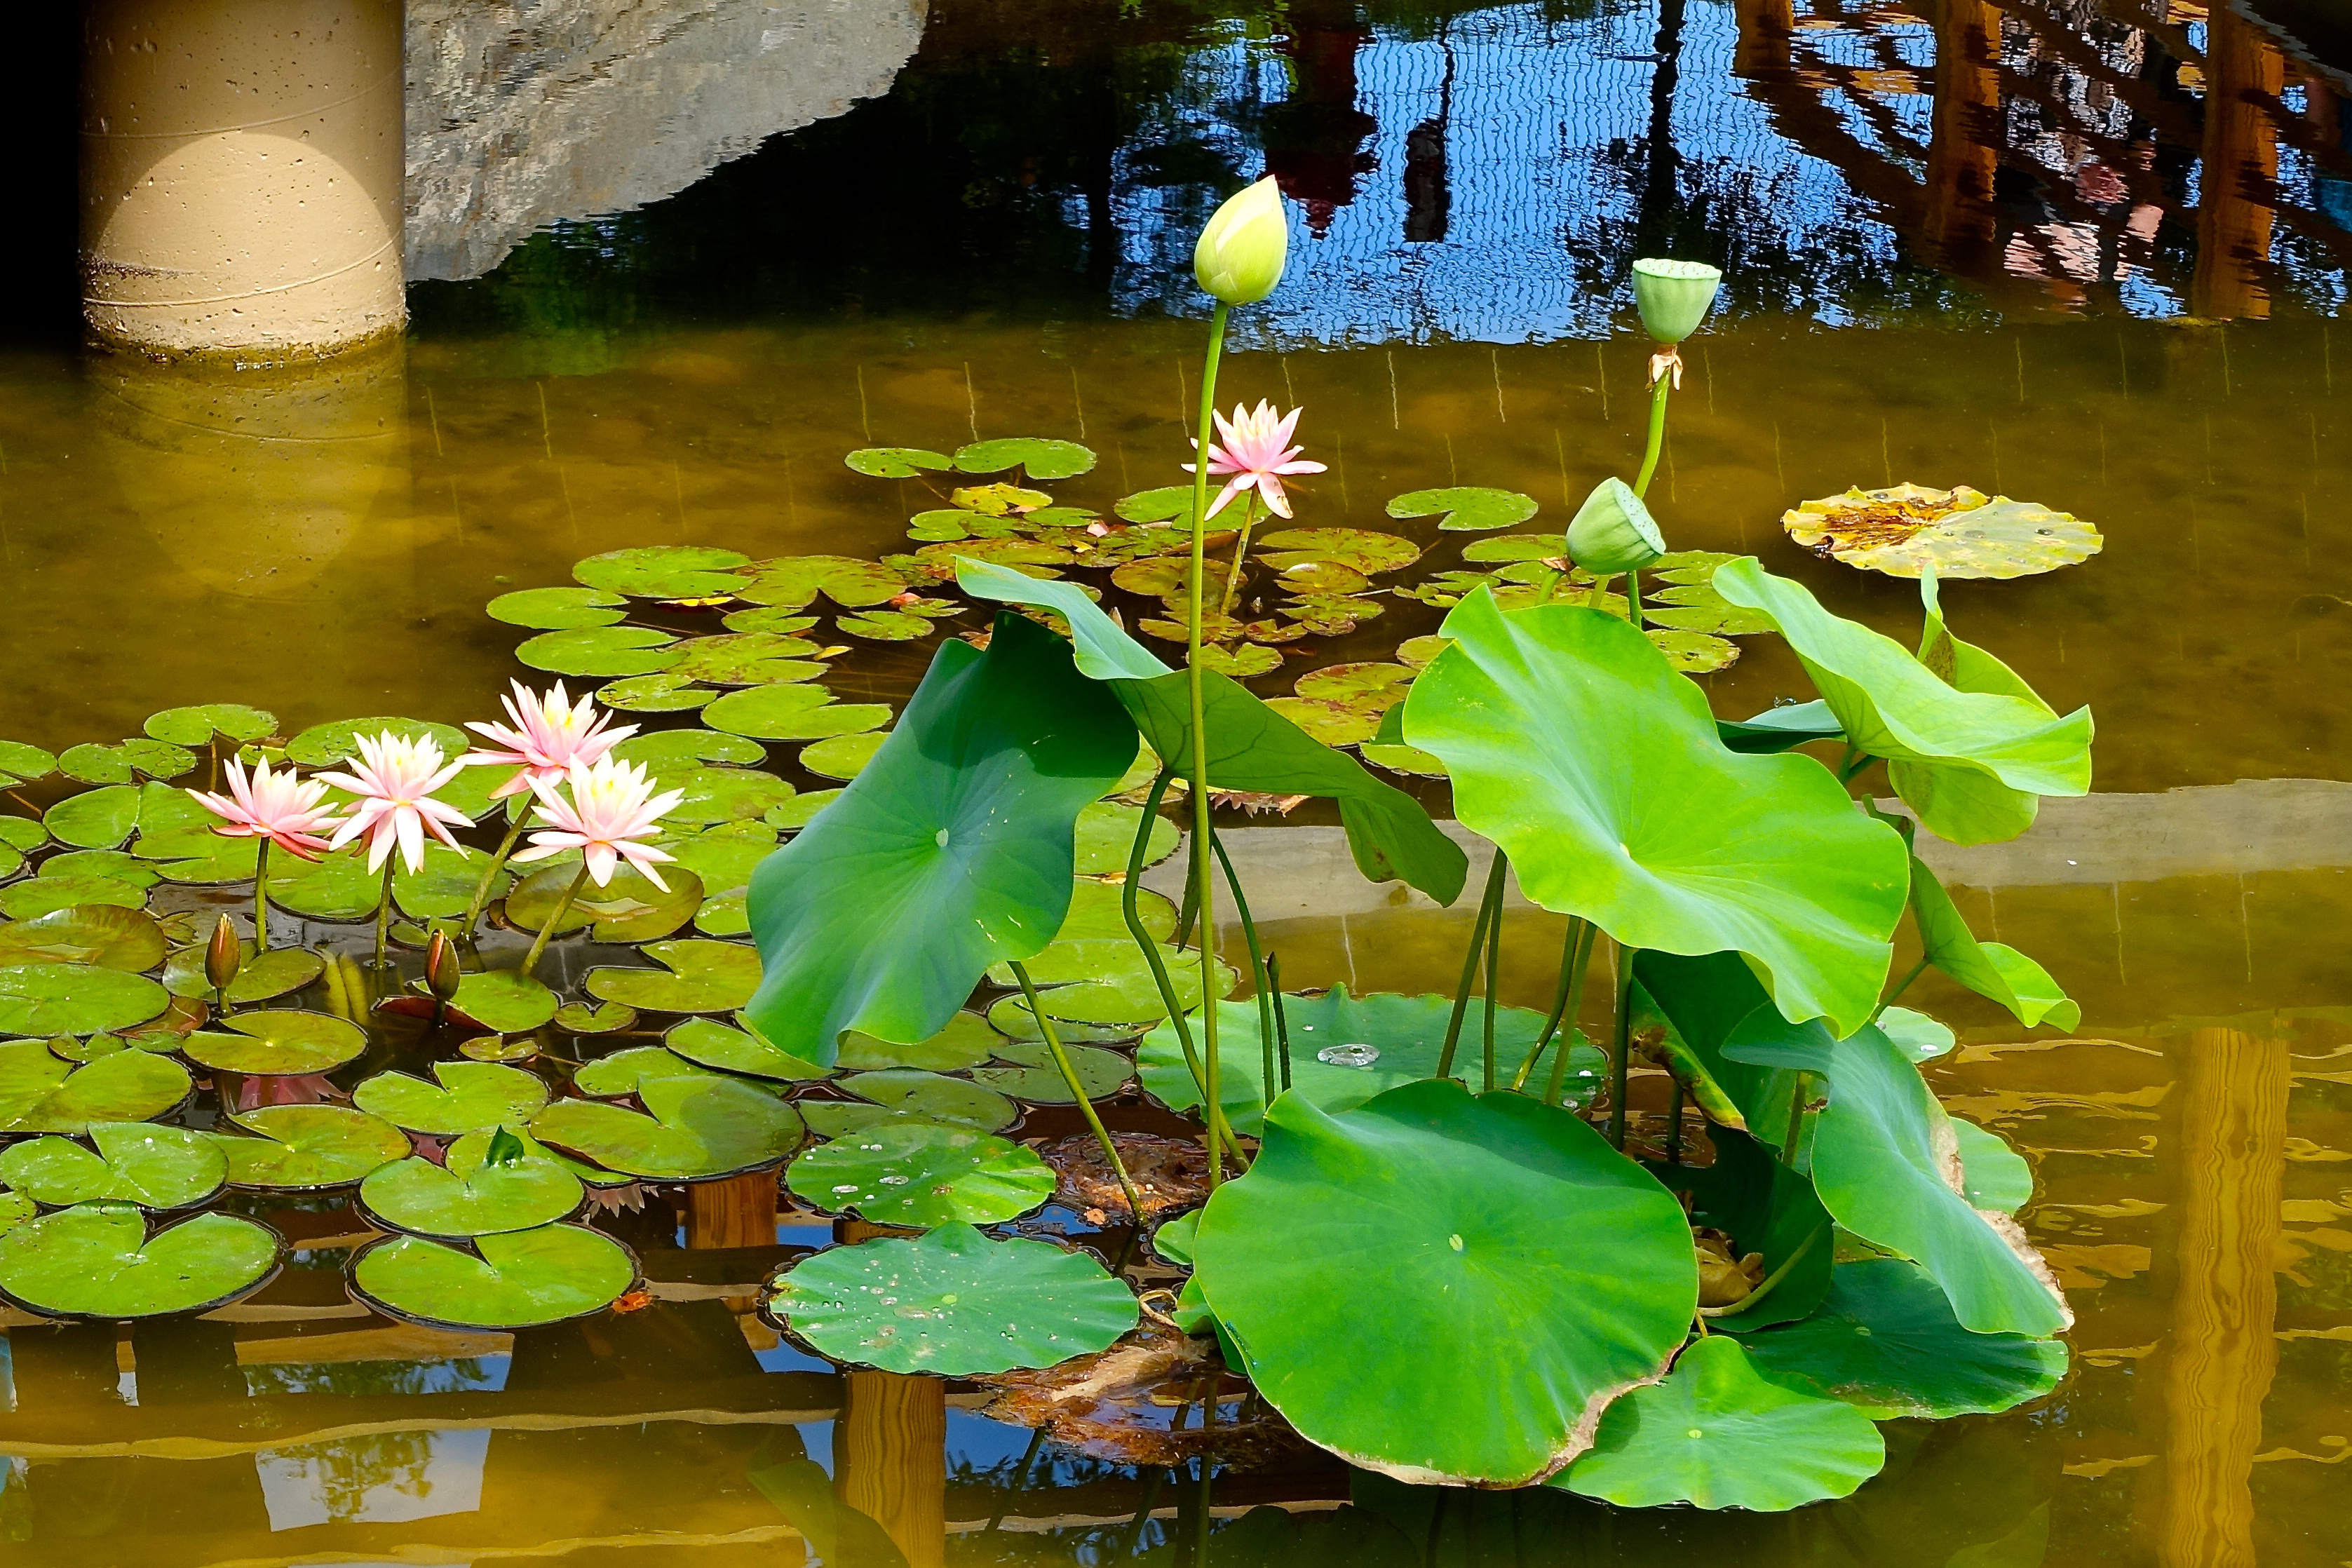 Water lilies and lotus blossoms at Frederik Meijer Japanese Garden